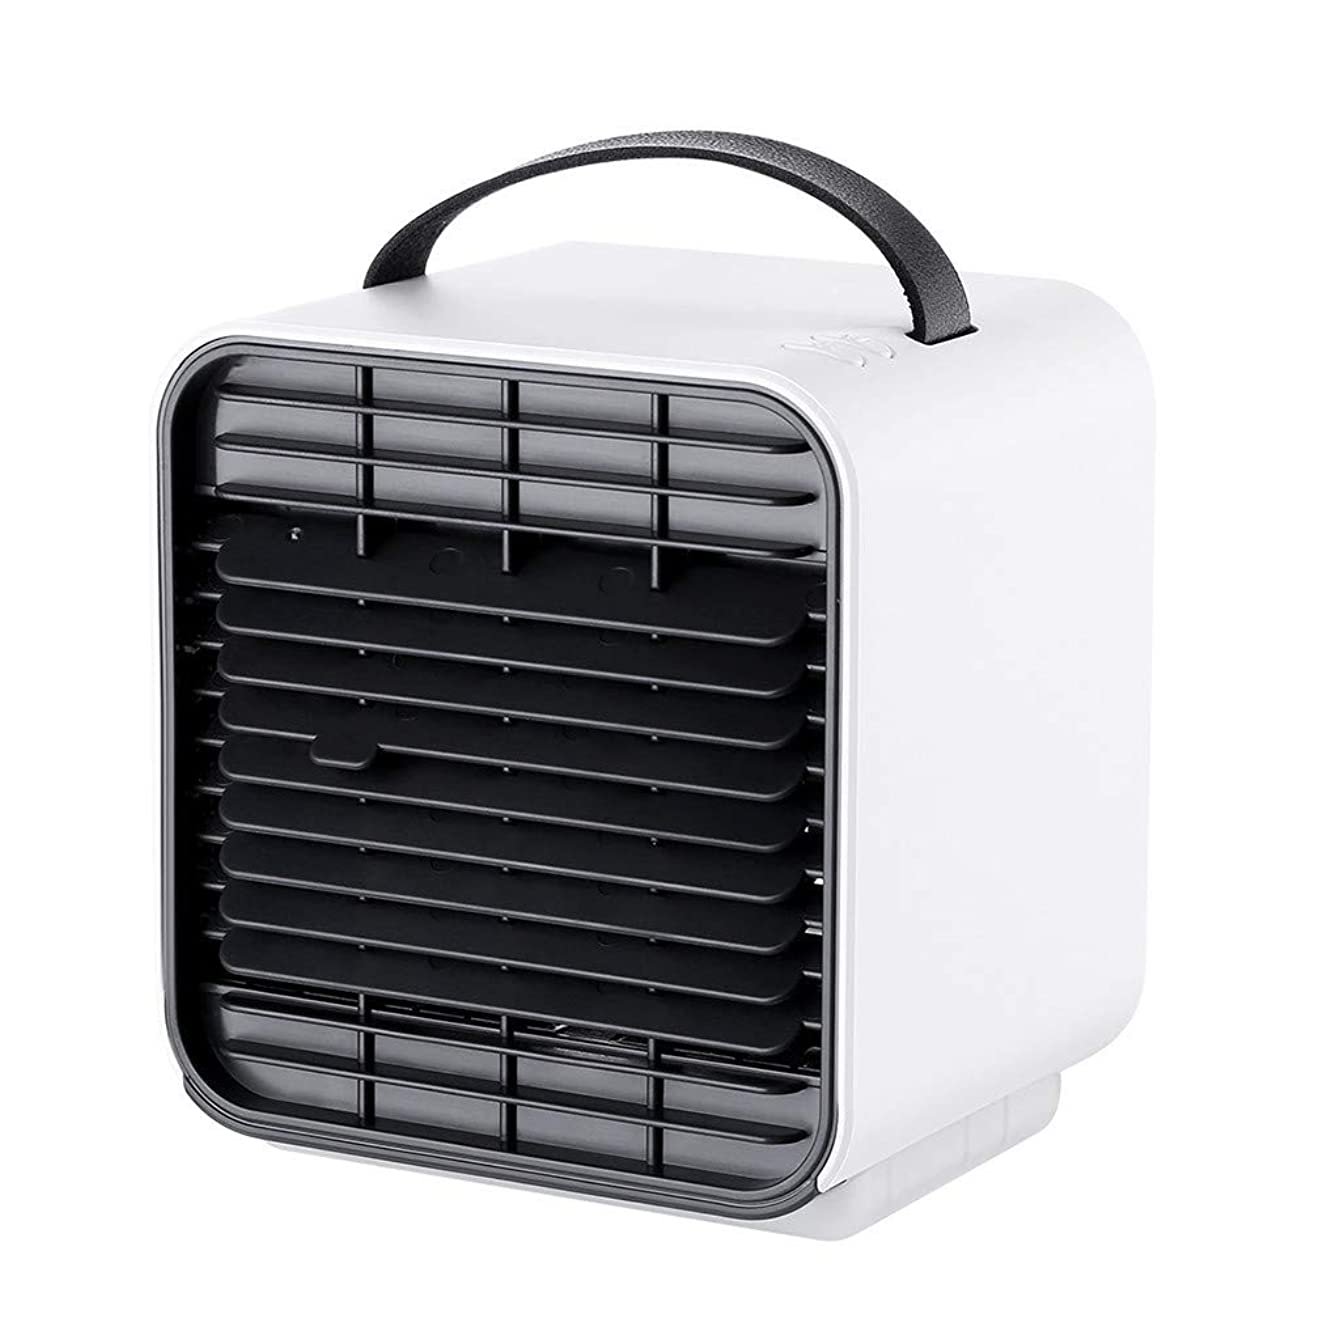 nightfall Portable Air Conditioner| Personal Small Air Conditioner, Small Cooling Unit, Quiet | Energy Saving,Environmentally Friendly, Desktop Cooling Fan, Office, Bedroom, Apartment